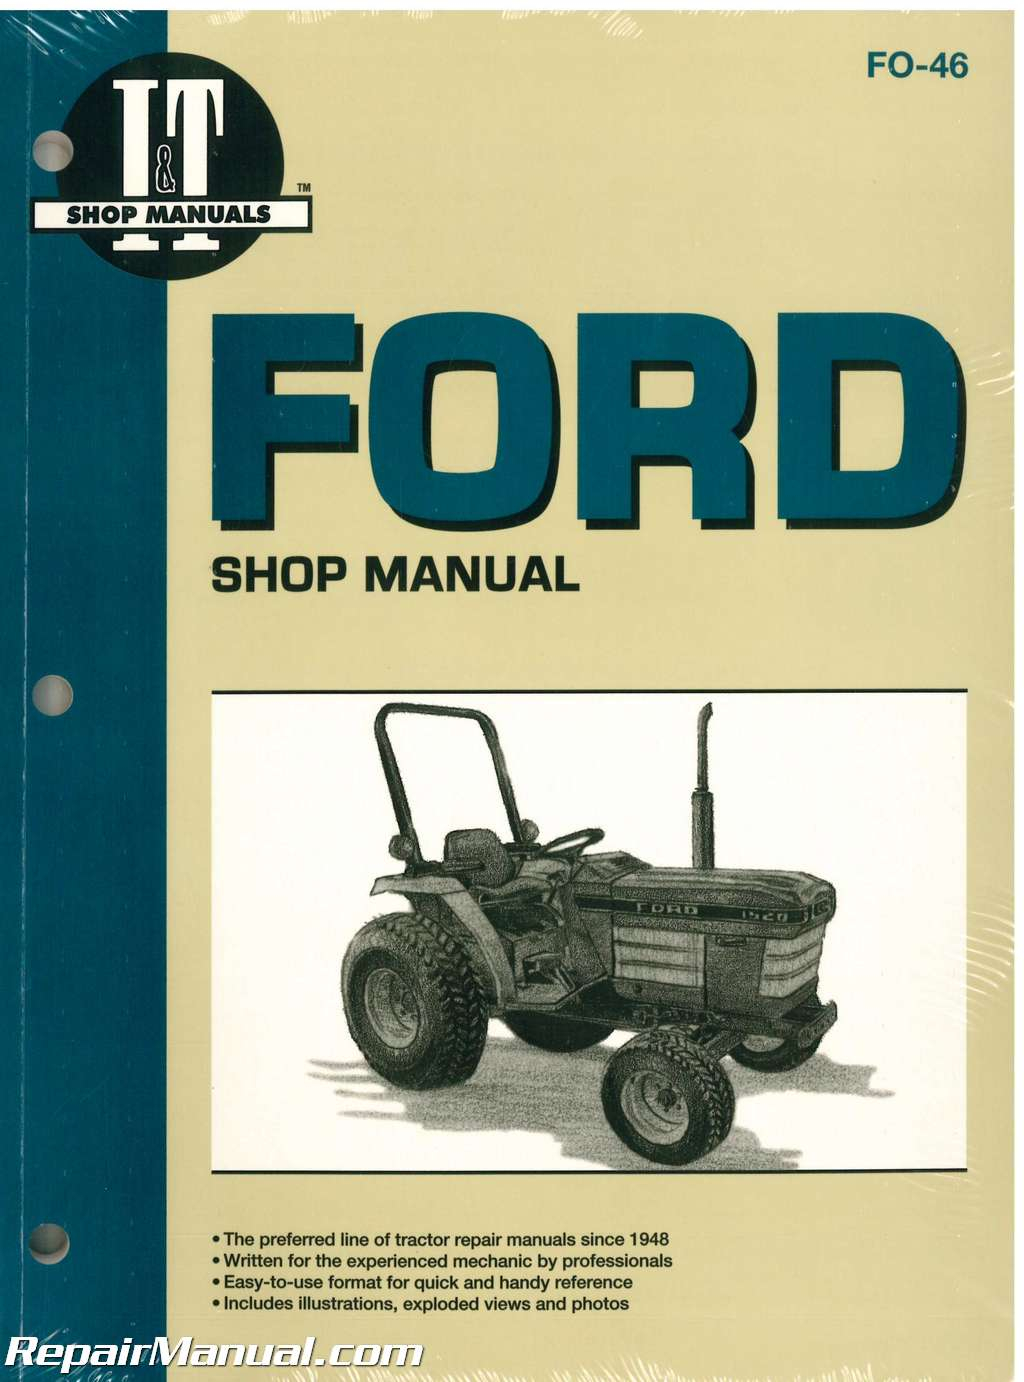 New Holland Skid Steer Parts Diagram New Holland 850 Wiring Diagram Wiring Diagram Content